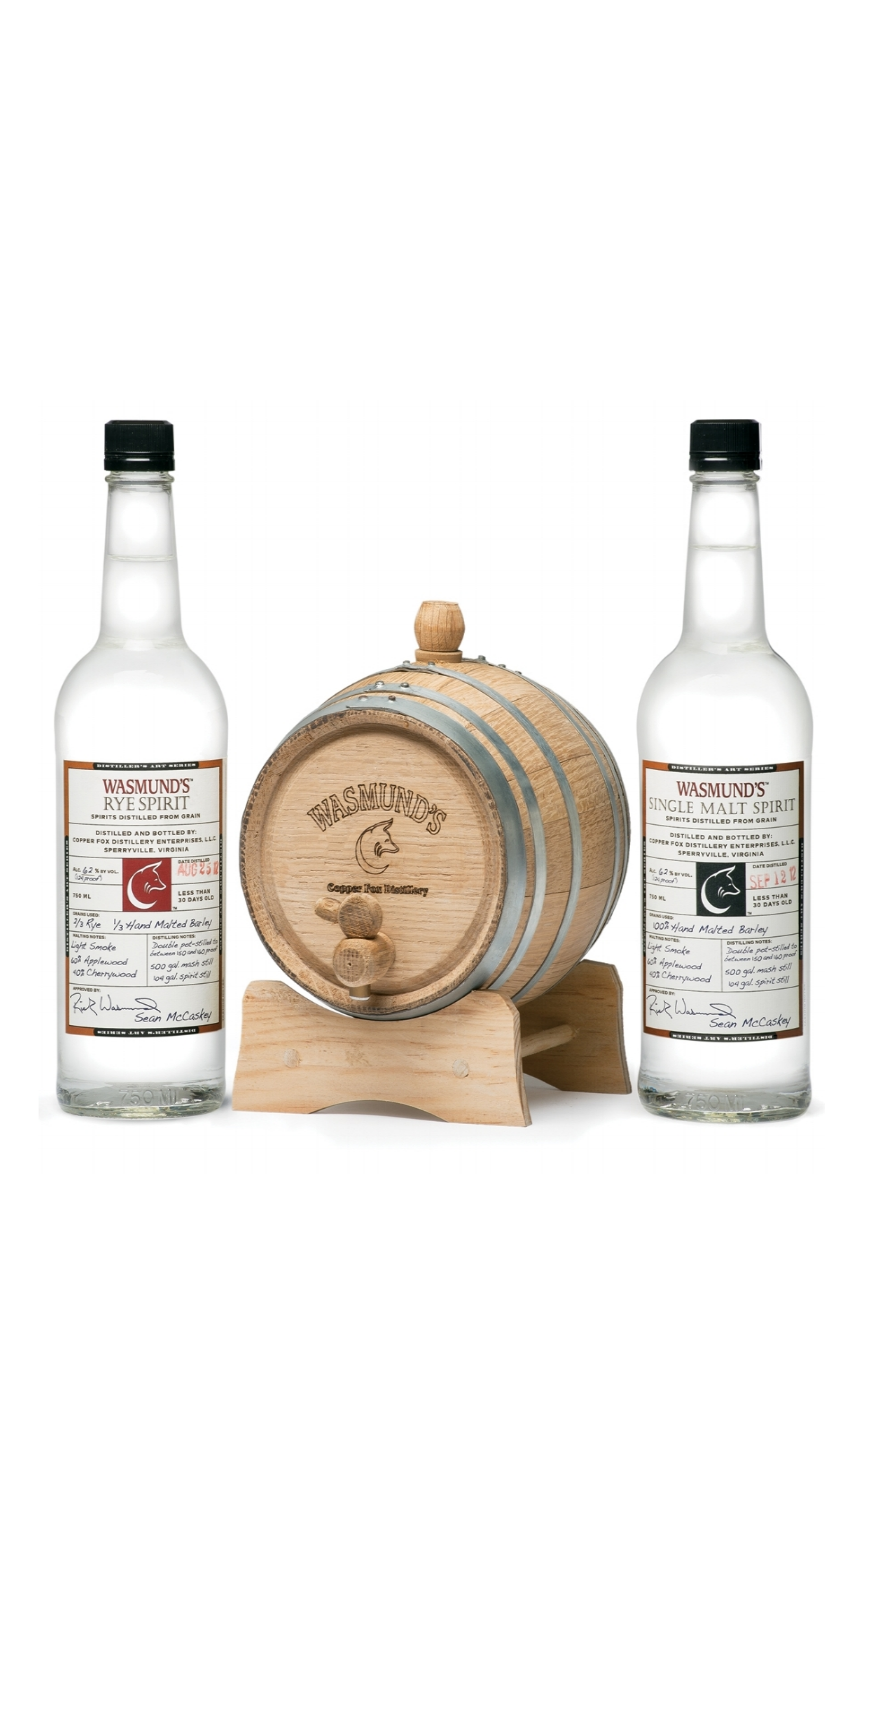 Rick Wasmund and Copper Fox Distillery continue to blaze new trails in the American whisky landscape!    Wasmund's Barrel Kit™ provides a uniquely creative opportunity for the casual or professional mixologist, the creative aspiring chef, or the true whisky connoisseur.  Read more...     The kits include:    Two-liter charred American White Oak mini-barrel    Two 750ml bottles of one of our brilliant cask strength (124 proof) spirits: Wasmund's Single Malt Spirit OR Wasmund's Rye Spirit     Detailed instructions and FAQ sheet